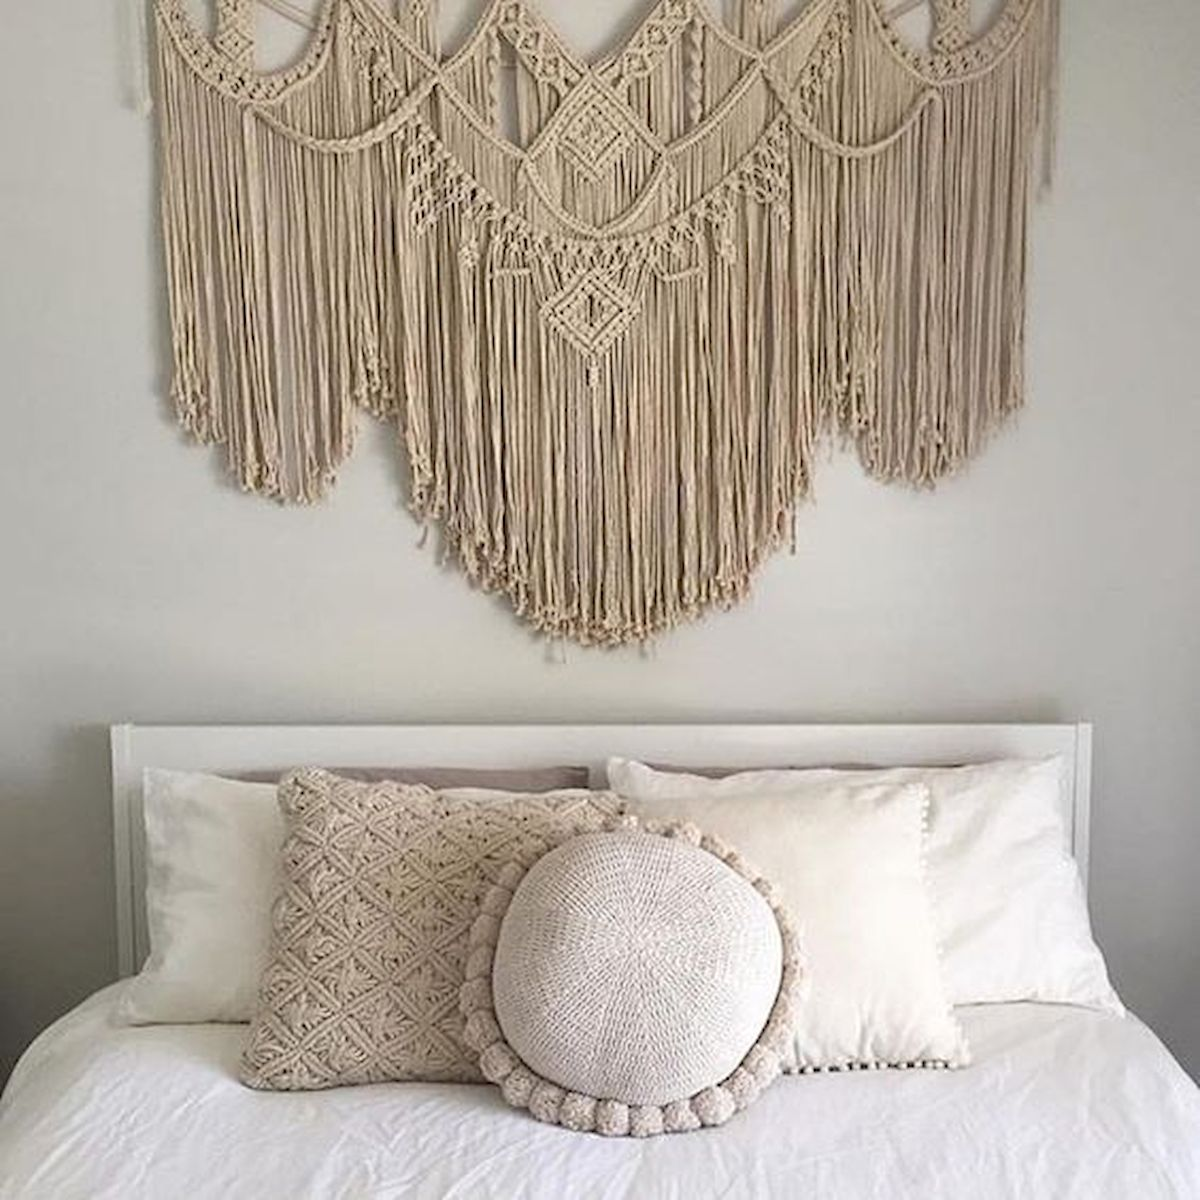 22 Best DIY Crafts for Bedroom Walls (2)